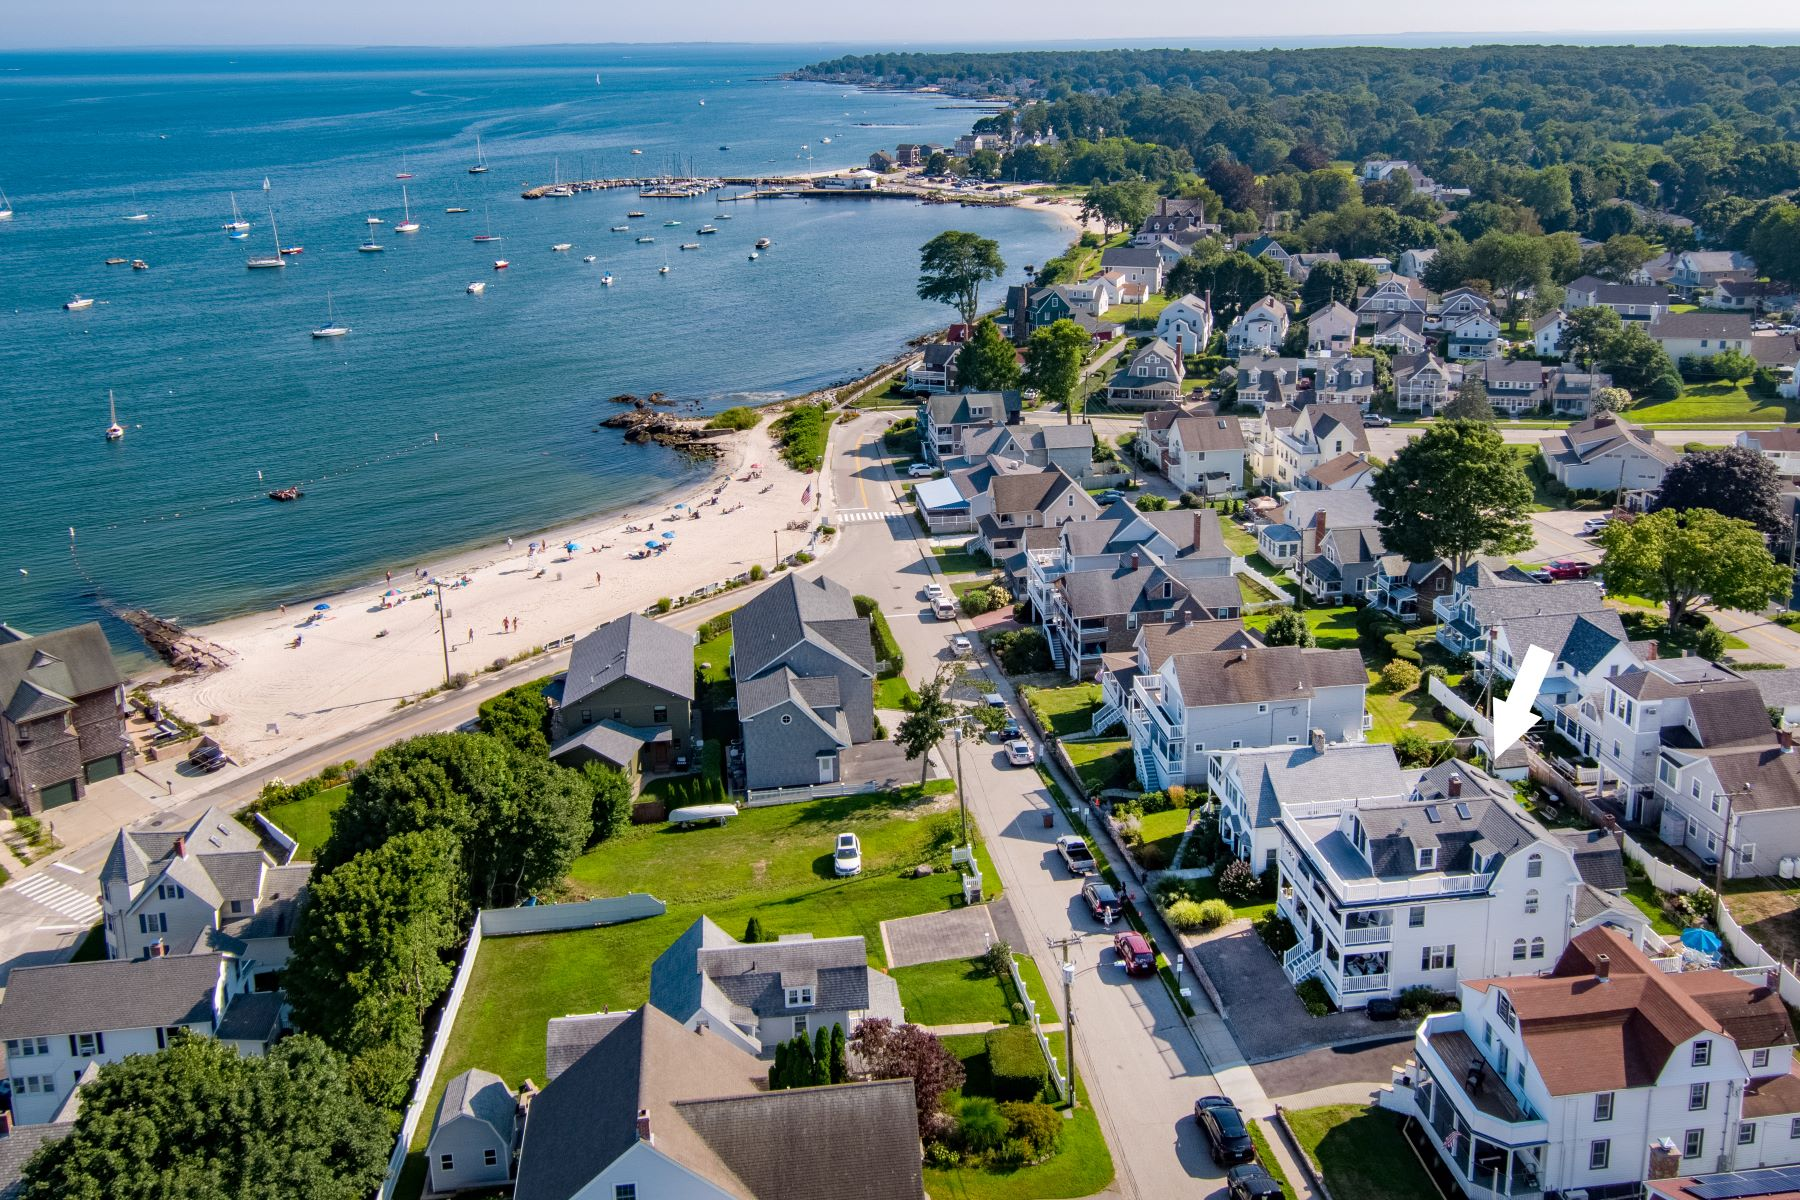 Single Family Homes for Sale at Views! Views! Views! 21 Bayview Avenue East Lyme, Connecticut 06357 United States